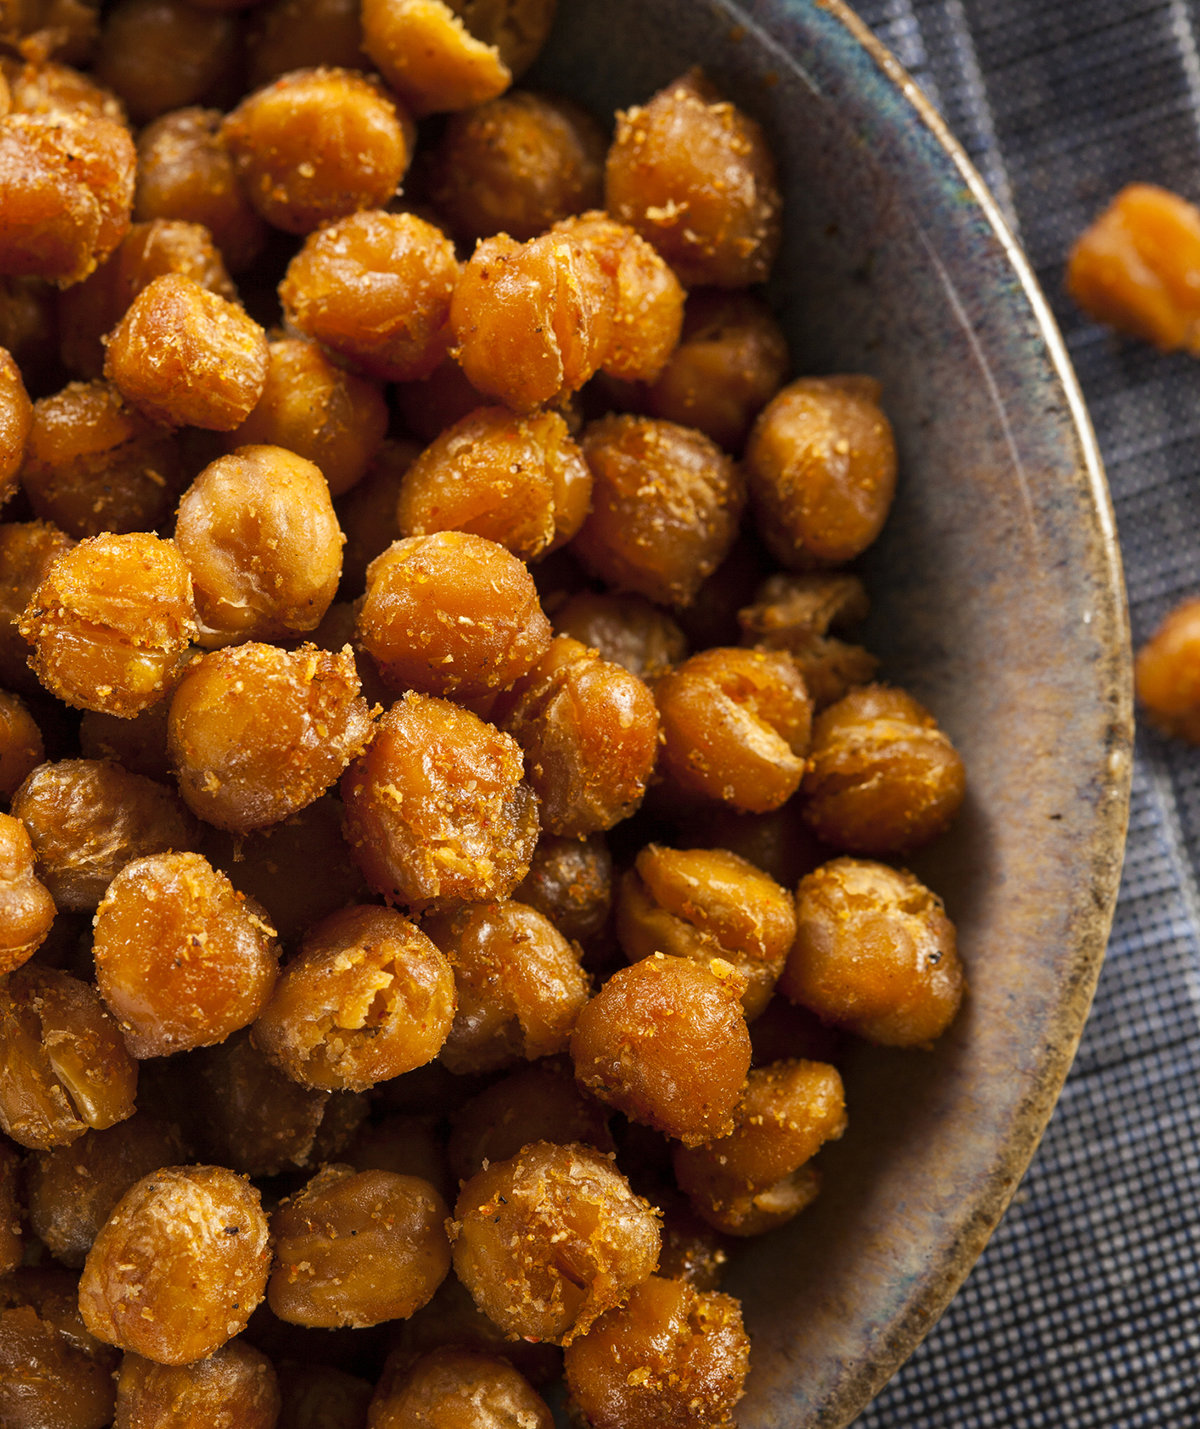 I Finally Figured Out How to Make the Crispiest, Crunchiest Chickpeas